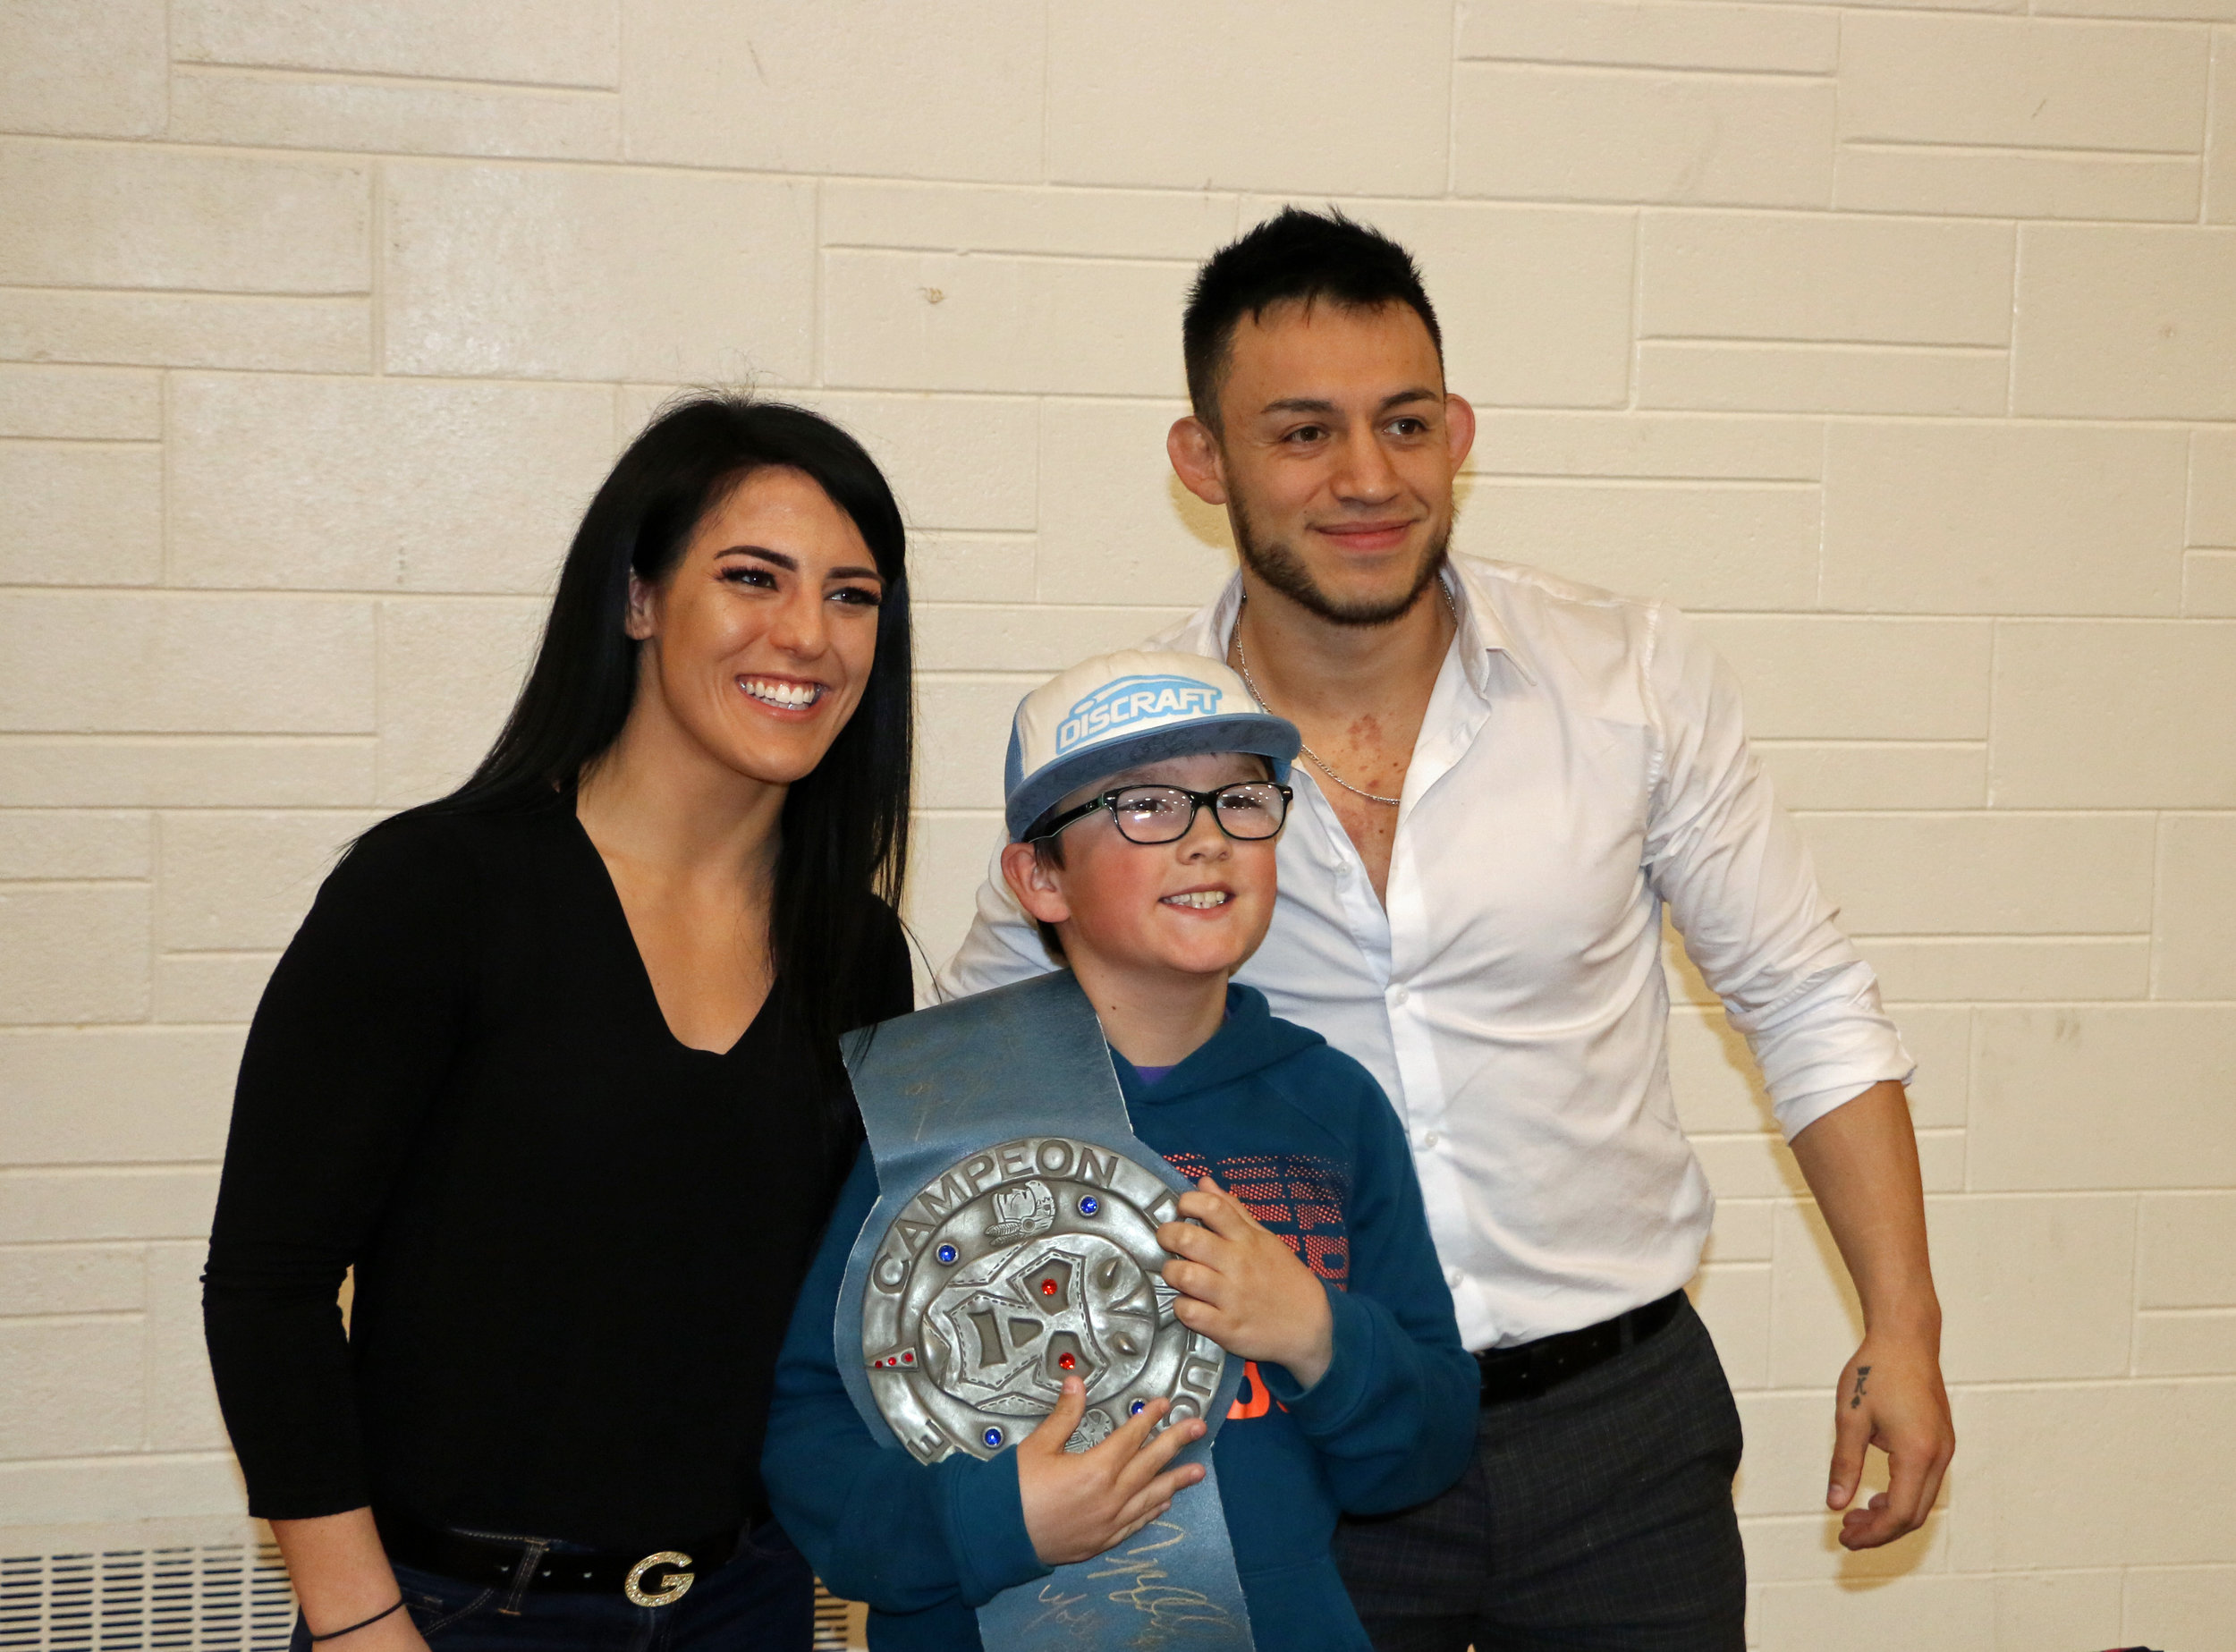 Tessa Blanchard, left, and Daga, right, pose with a young fan at the Warrior Wrestling 5 fan fest on May 12.  (Photo by Mike Pankow)